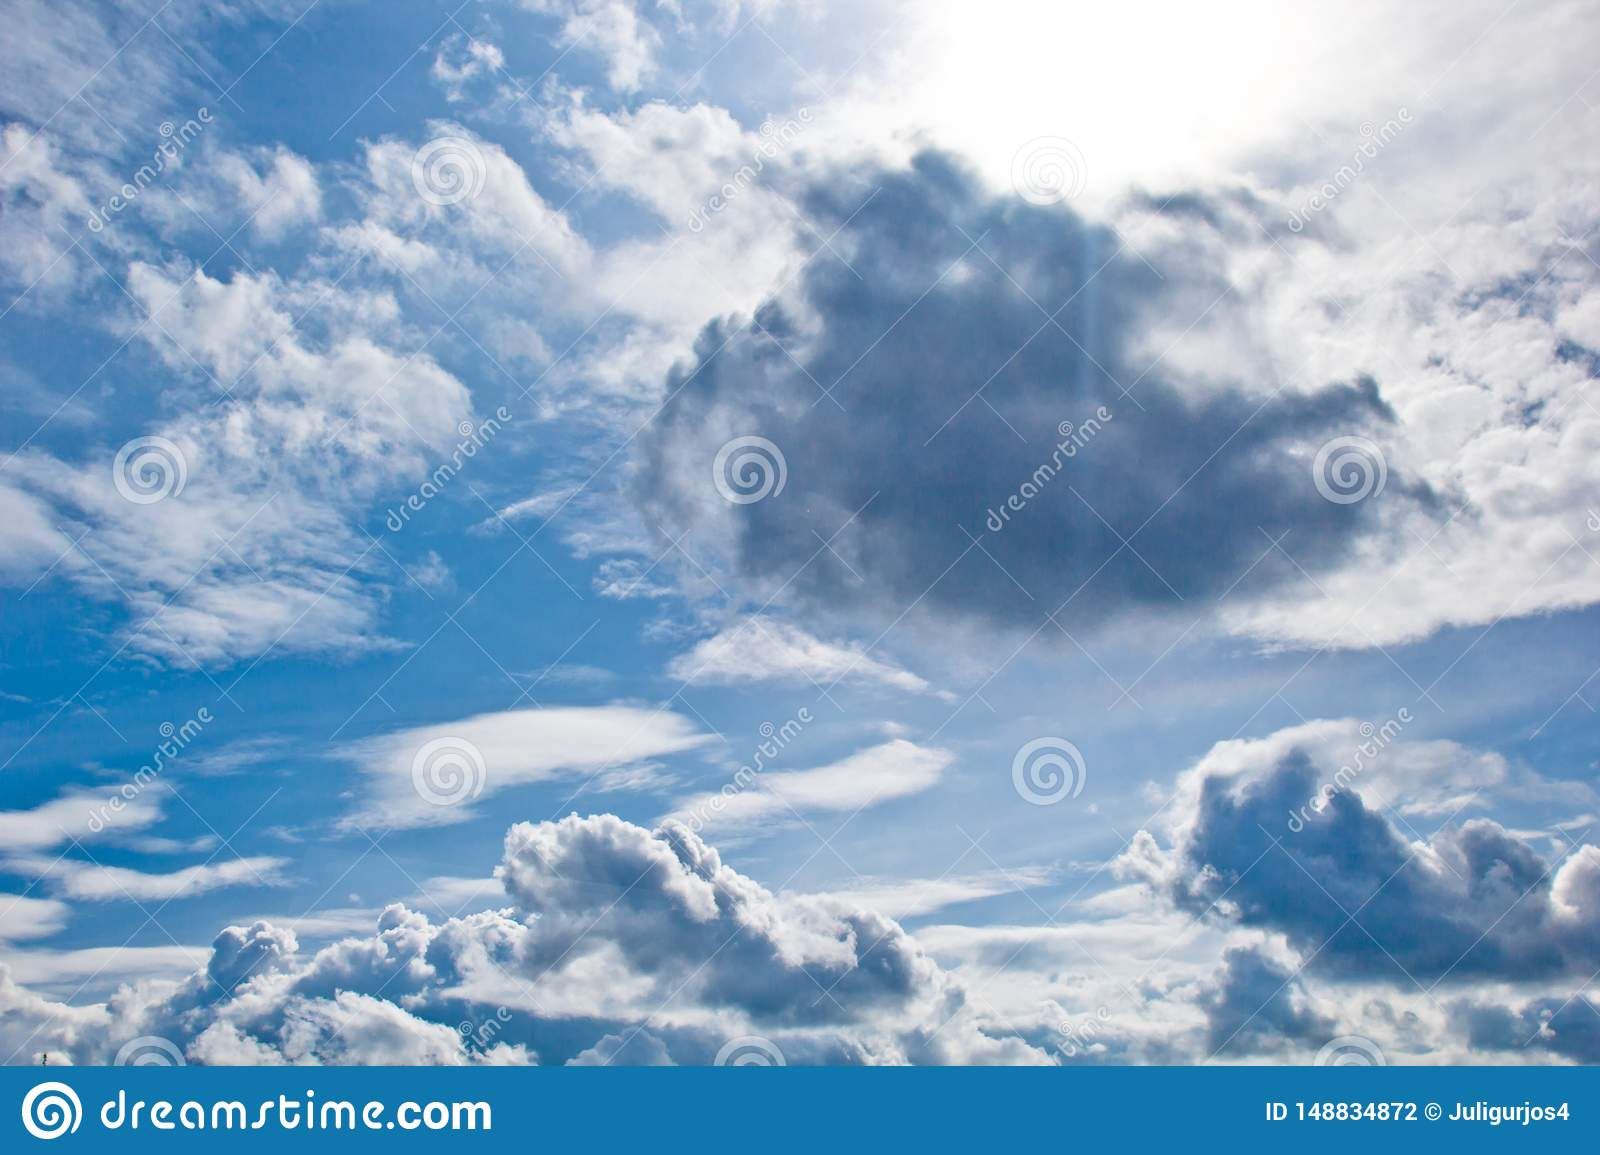 White Cumulus Clouds In The Form Of Cotton Wool On A Blue Sky ...